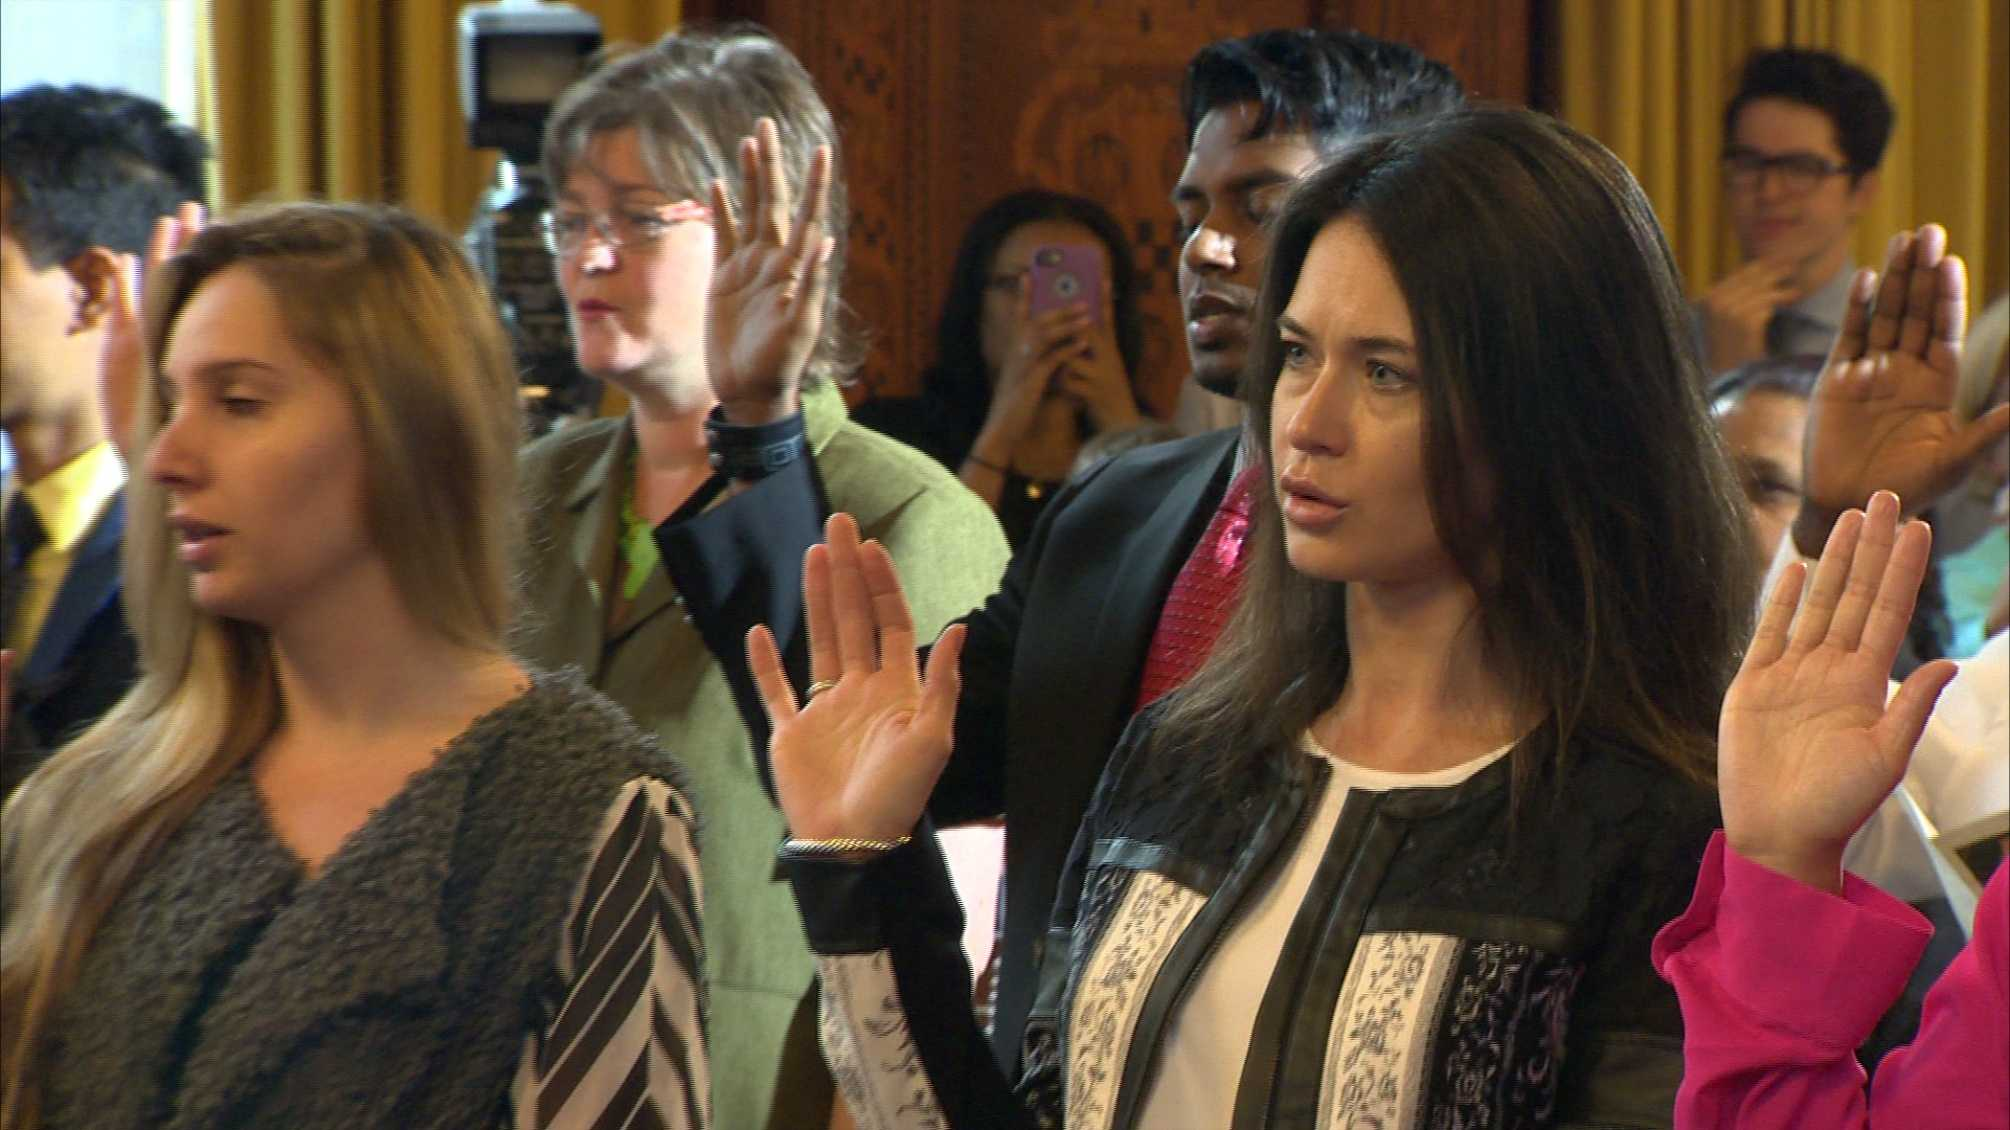 More than two dozen new U.S. citizens pledge their allegiance to their new country at the first-ever naturalization ceremony in Pittsburgh City Council Chambers.